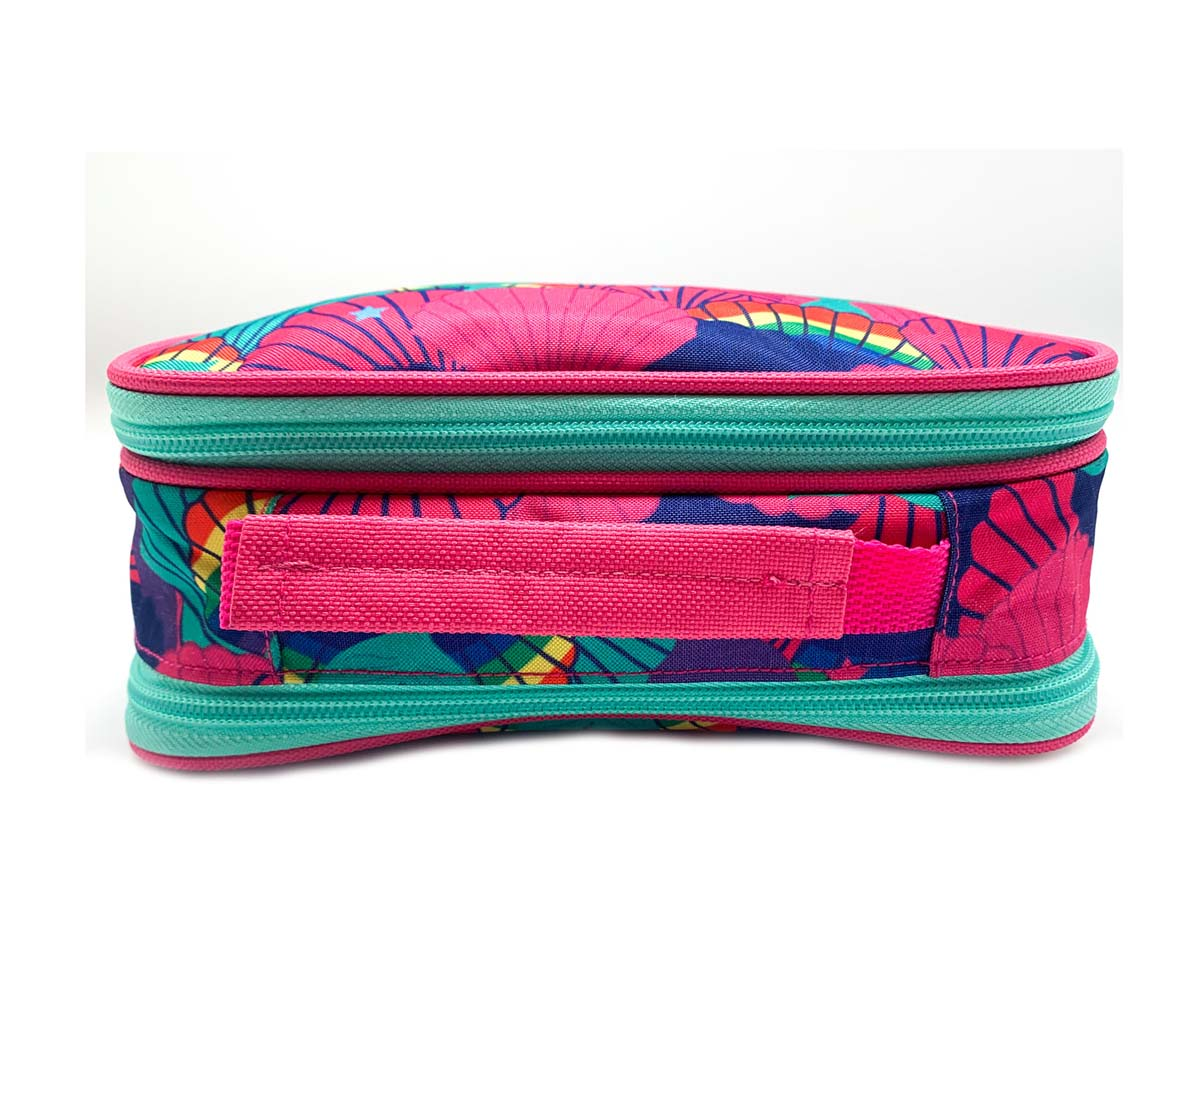 Hamster London   Hamster London Straight Fire Pencil Case Mermaid Bags for Girls Age 3Y+ (Pink)